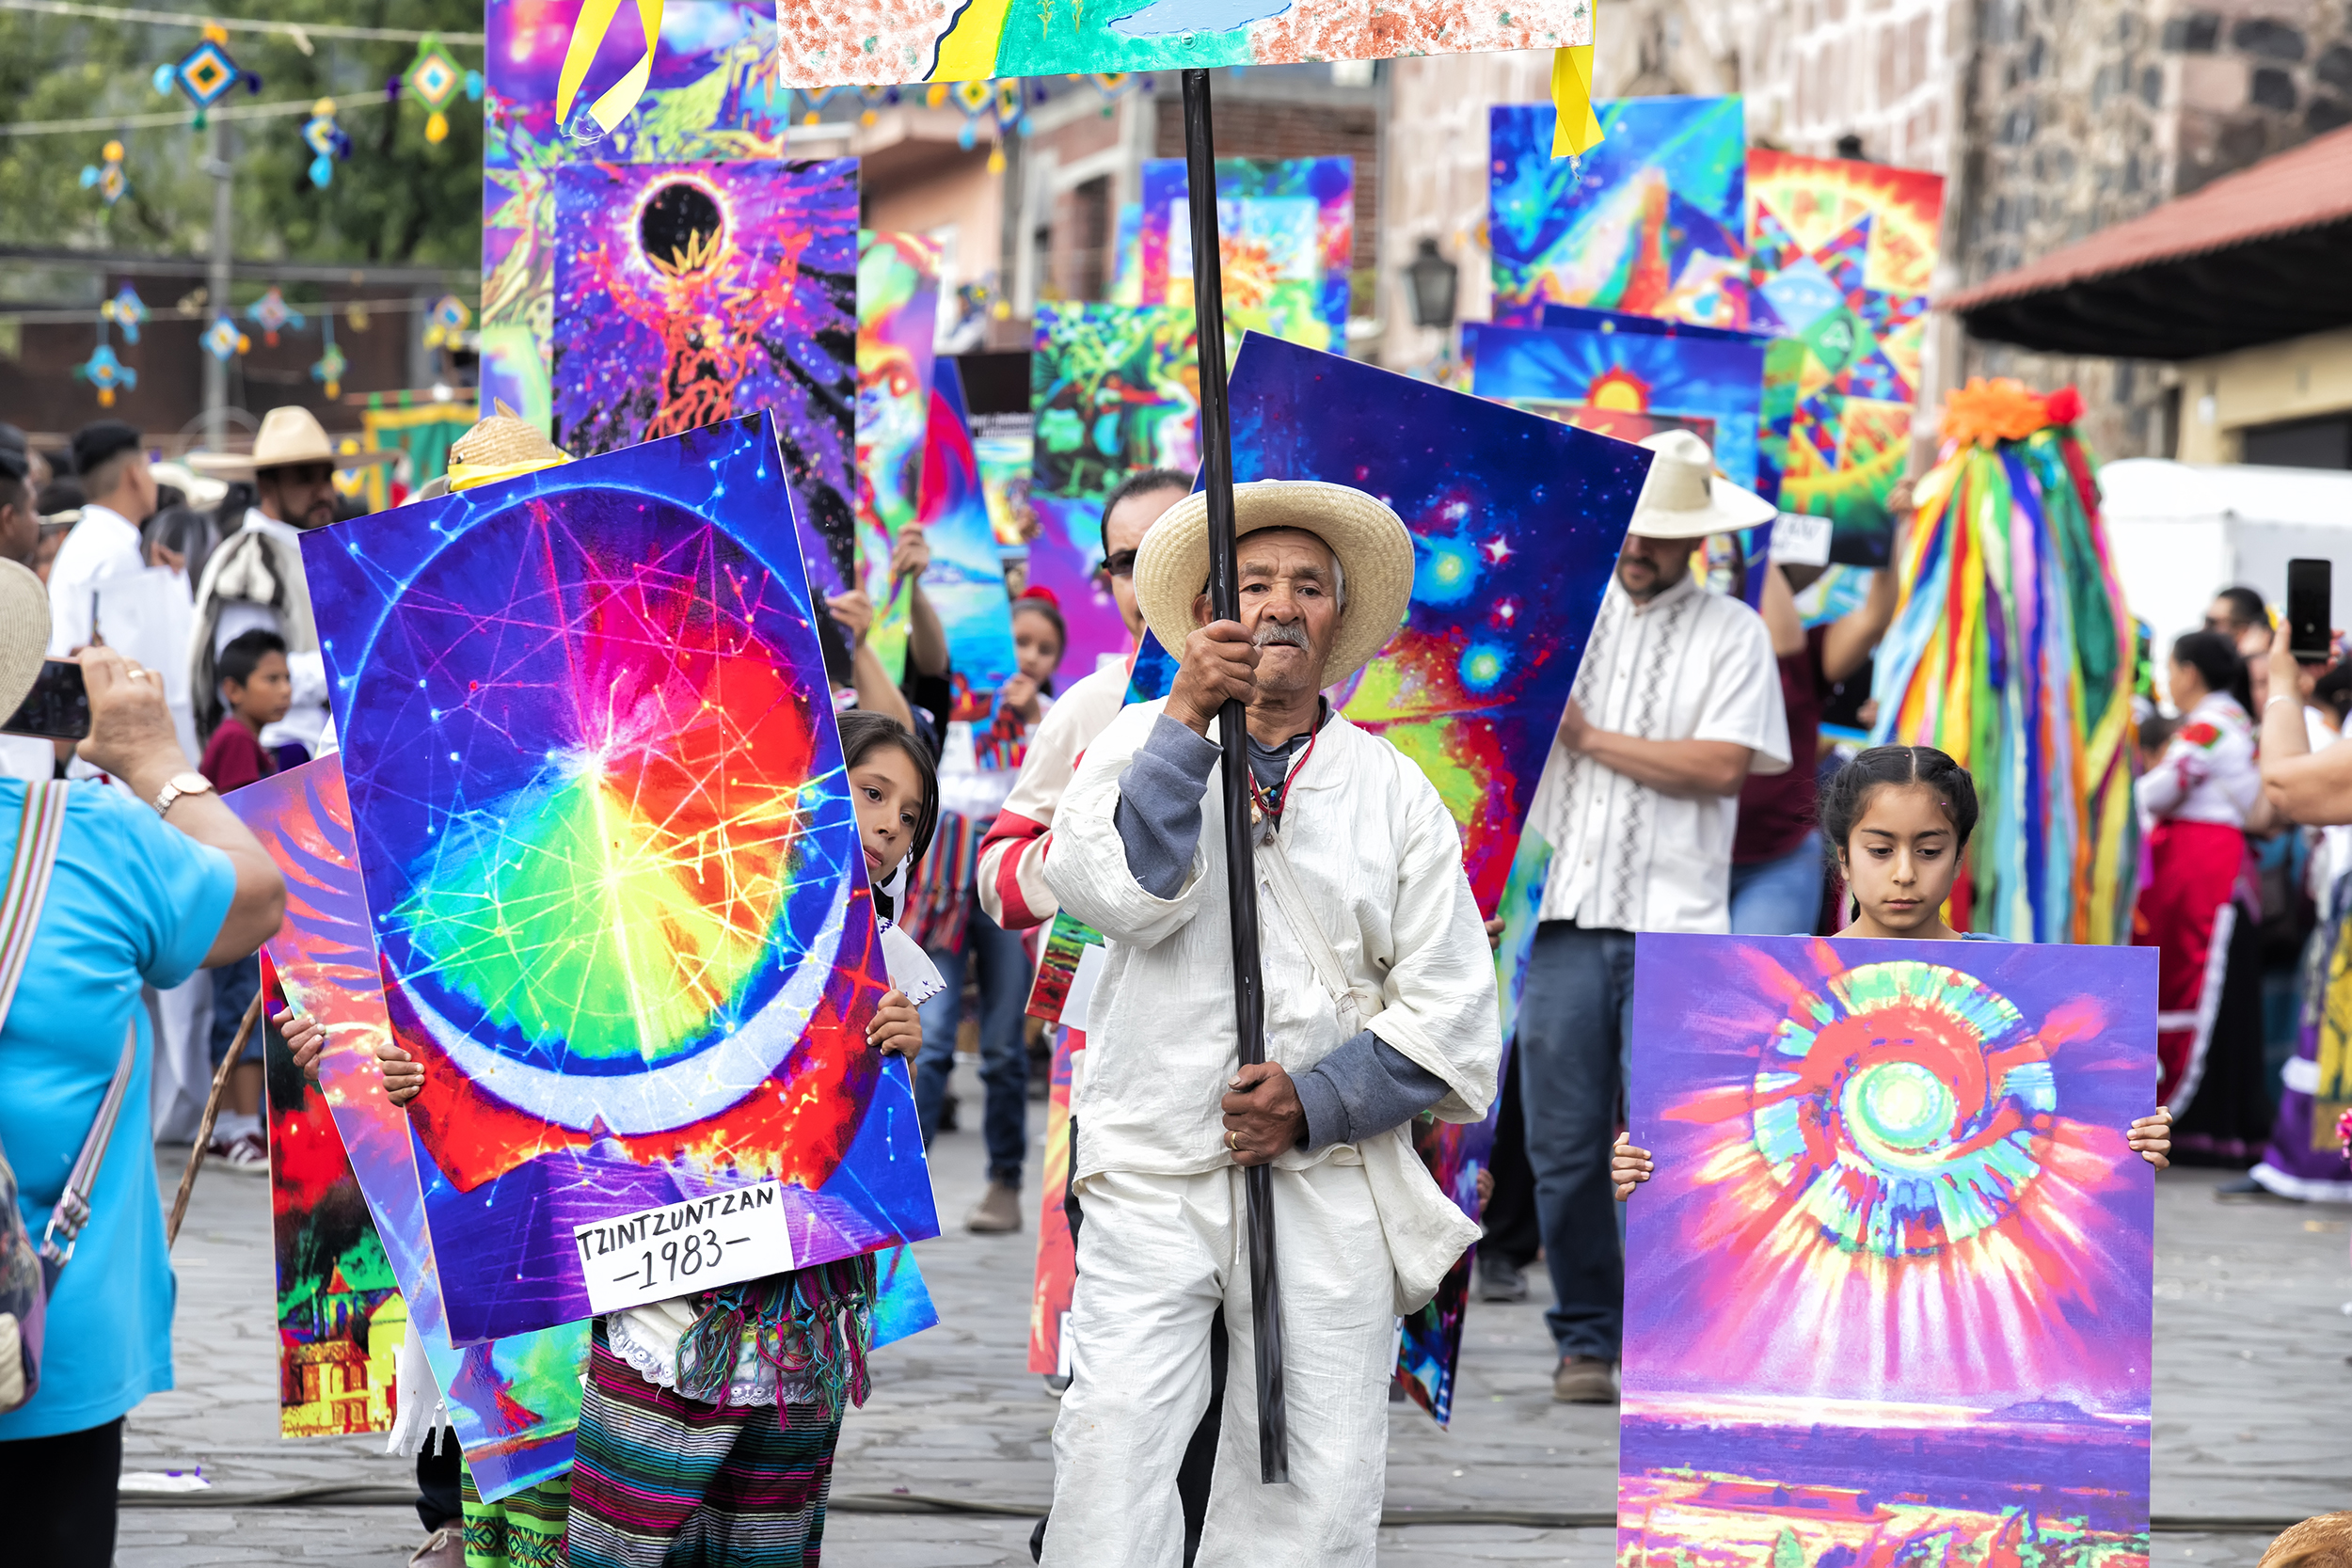 an elderly man and two young girls carry signs as part of a Mexican New Year celebration